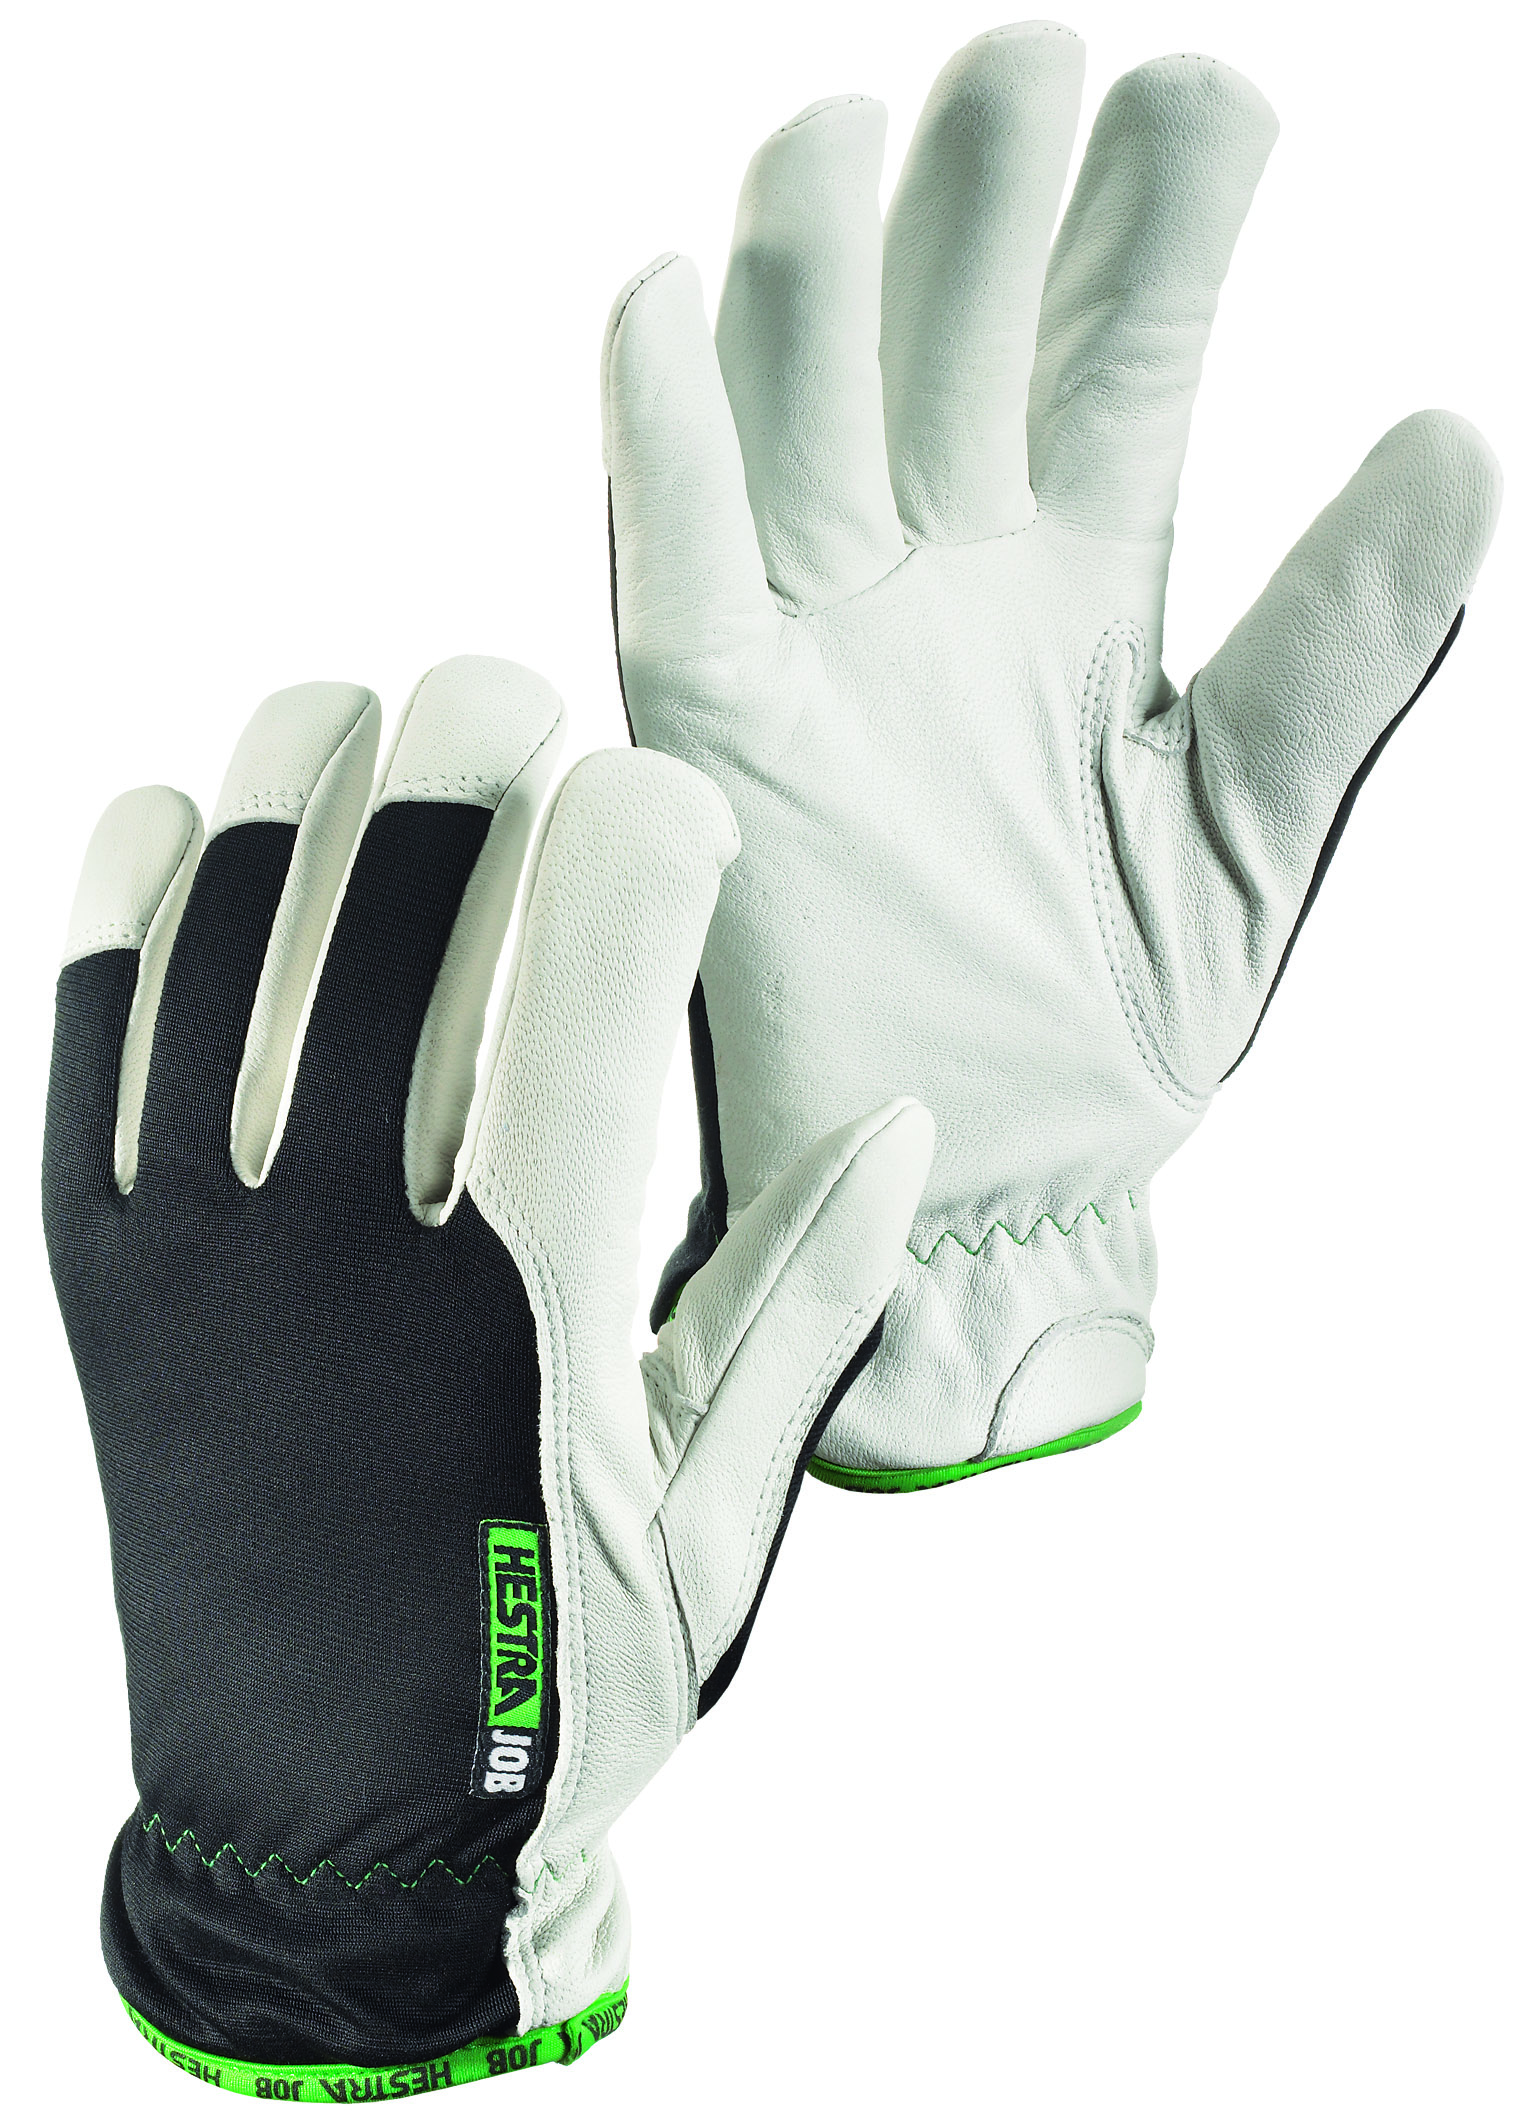 Mro amp industrial supply gt safety amp security gt protective gear gt gloves